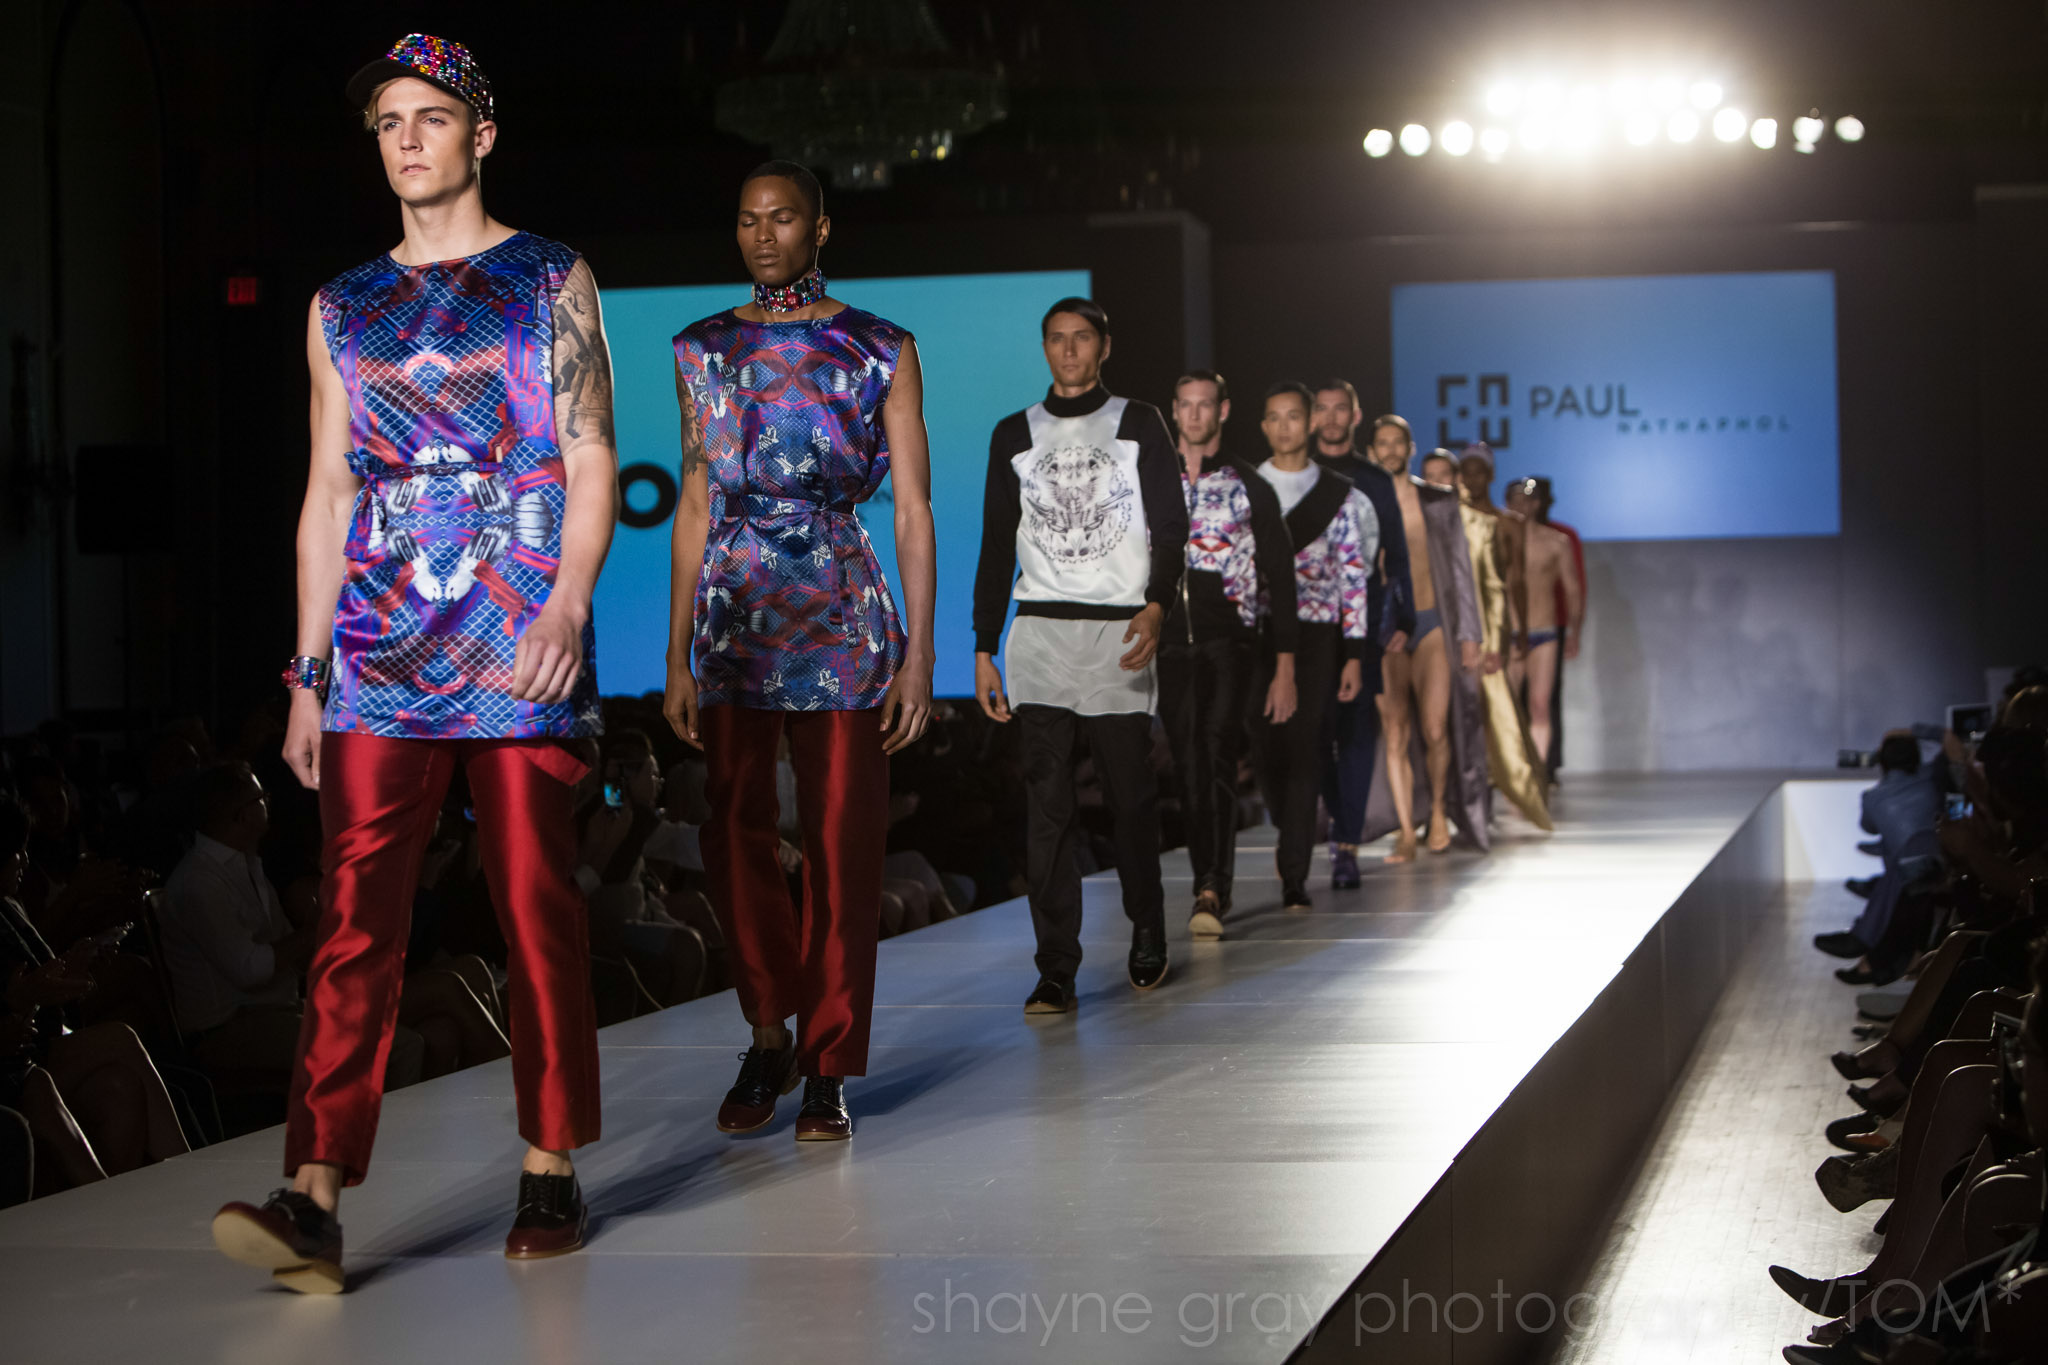 Shayne-Gray-Toronto-men's-fashion_week-TOM-paul-nathaphol-7997.jpg